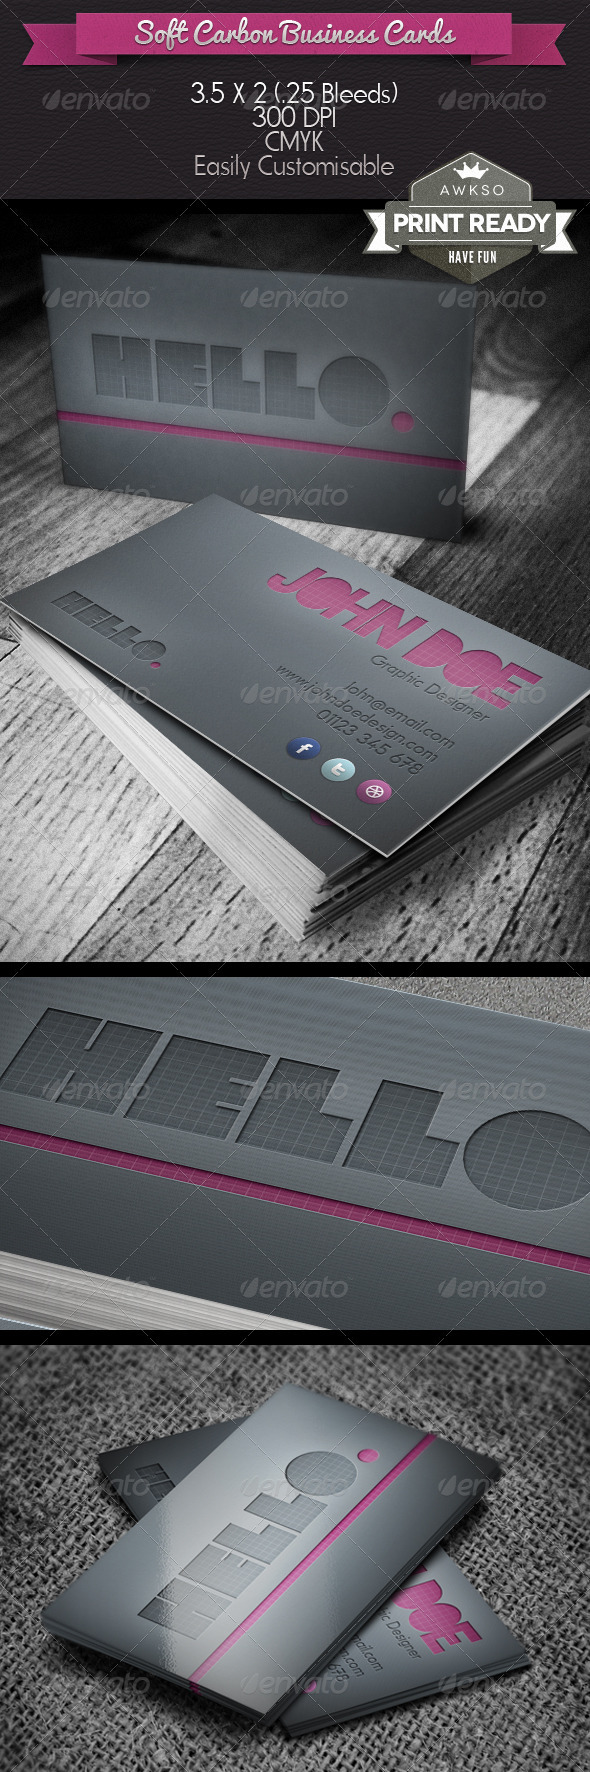 GraphicRiver Soft Carbon Business Card 3930533